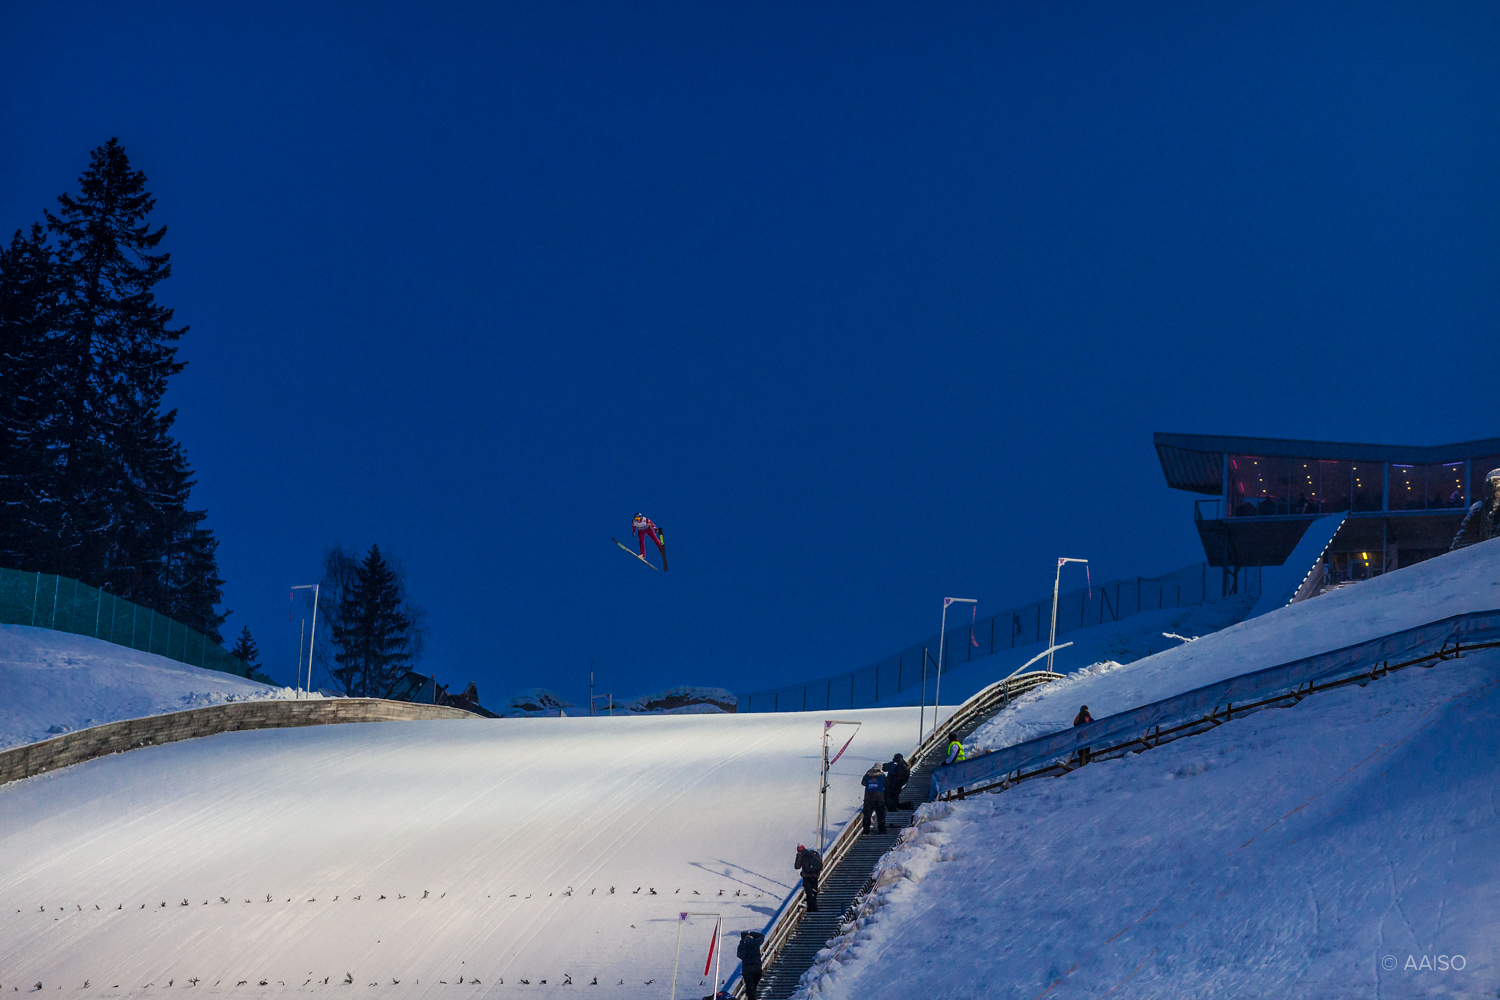 Kamil Stoch, Poland. Ski Flying, Vikersund'13